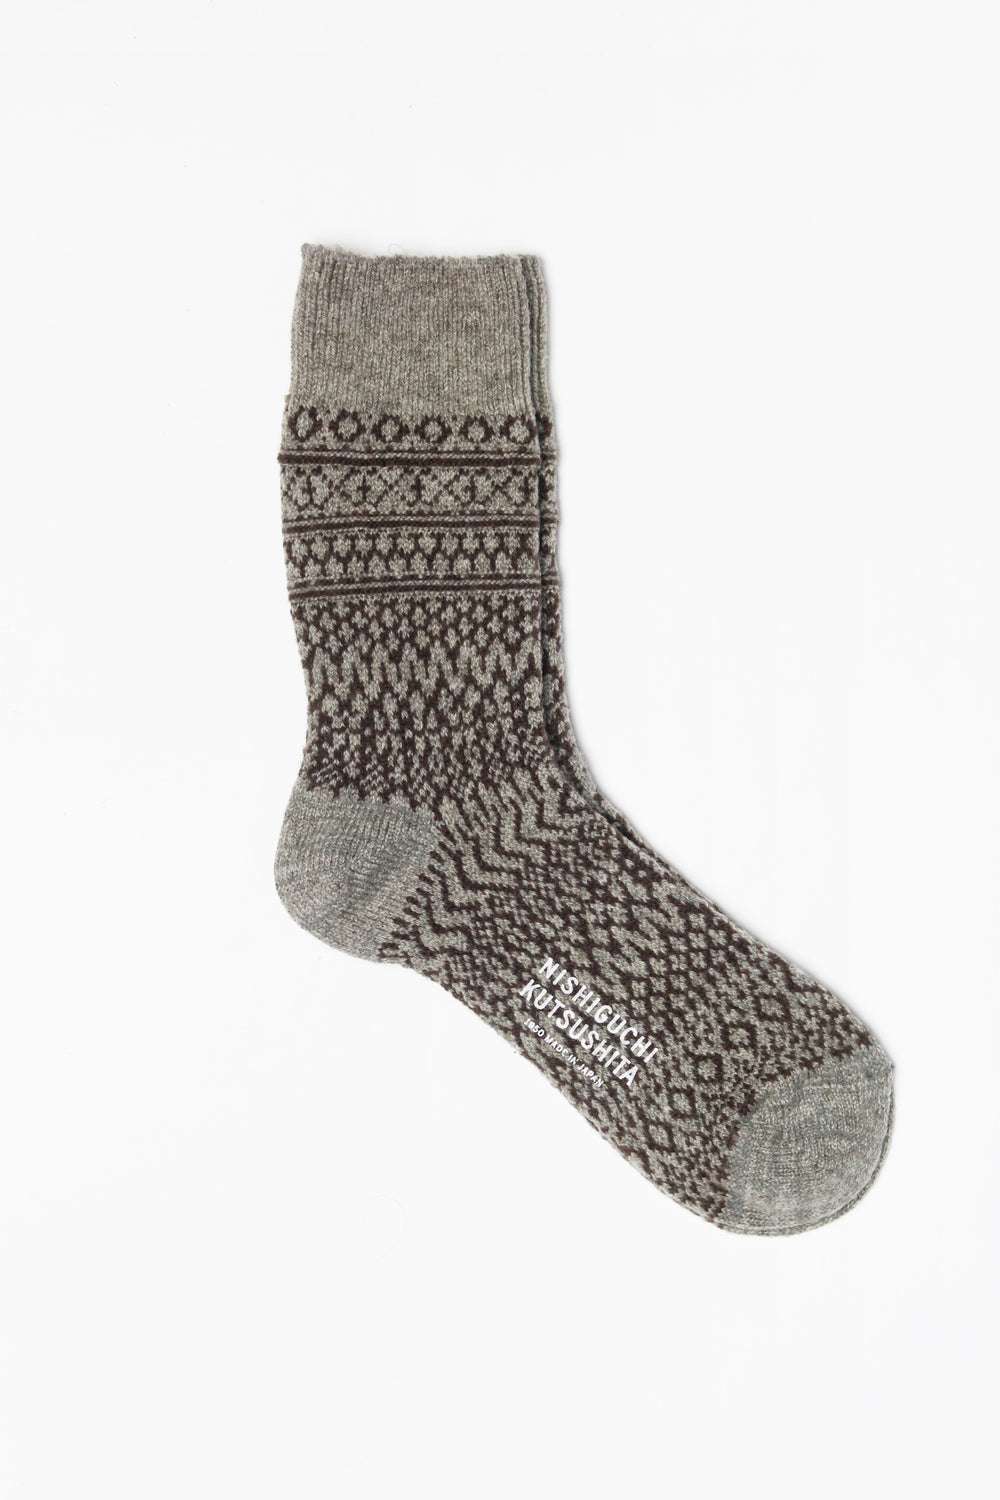 Wool Jacquard Socks, Grey with Brown ( Size M Only )